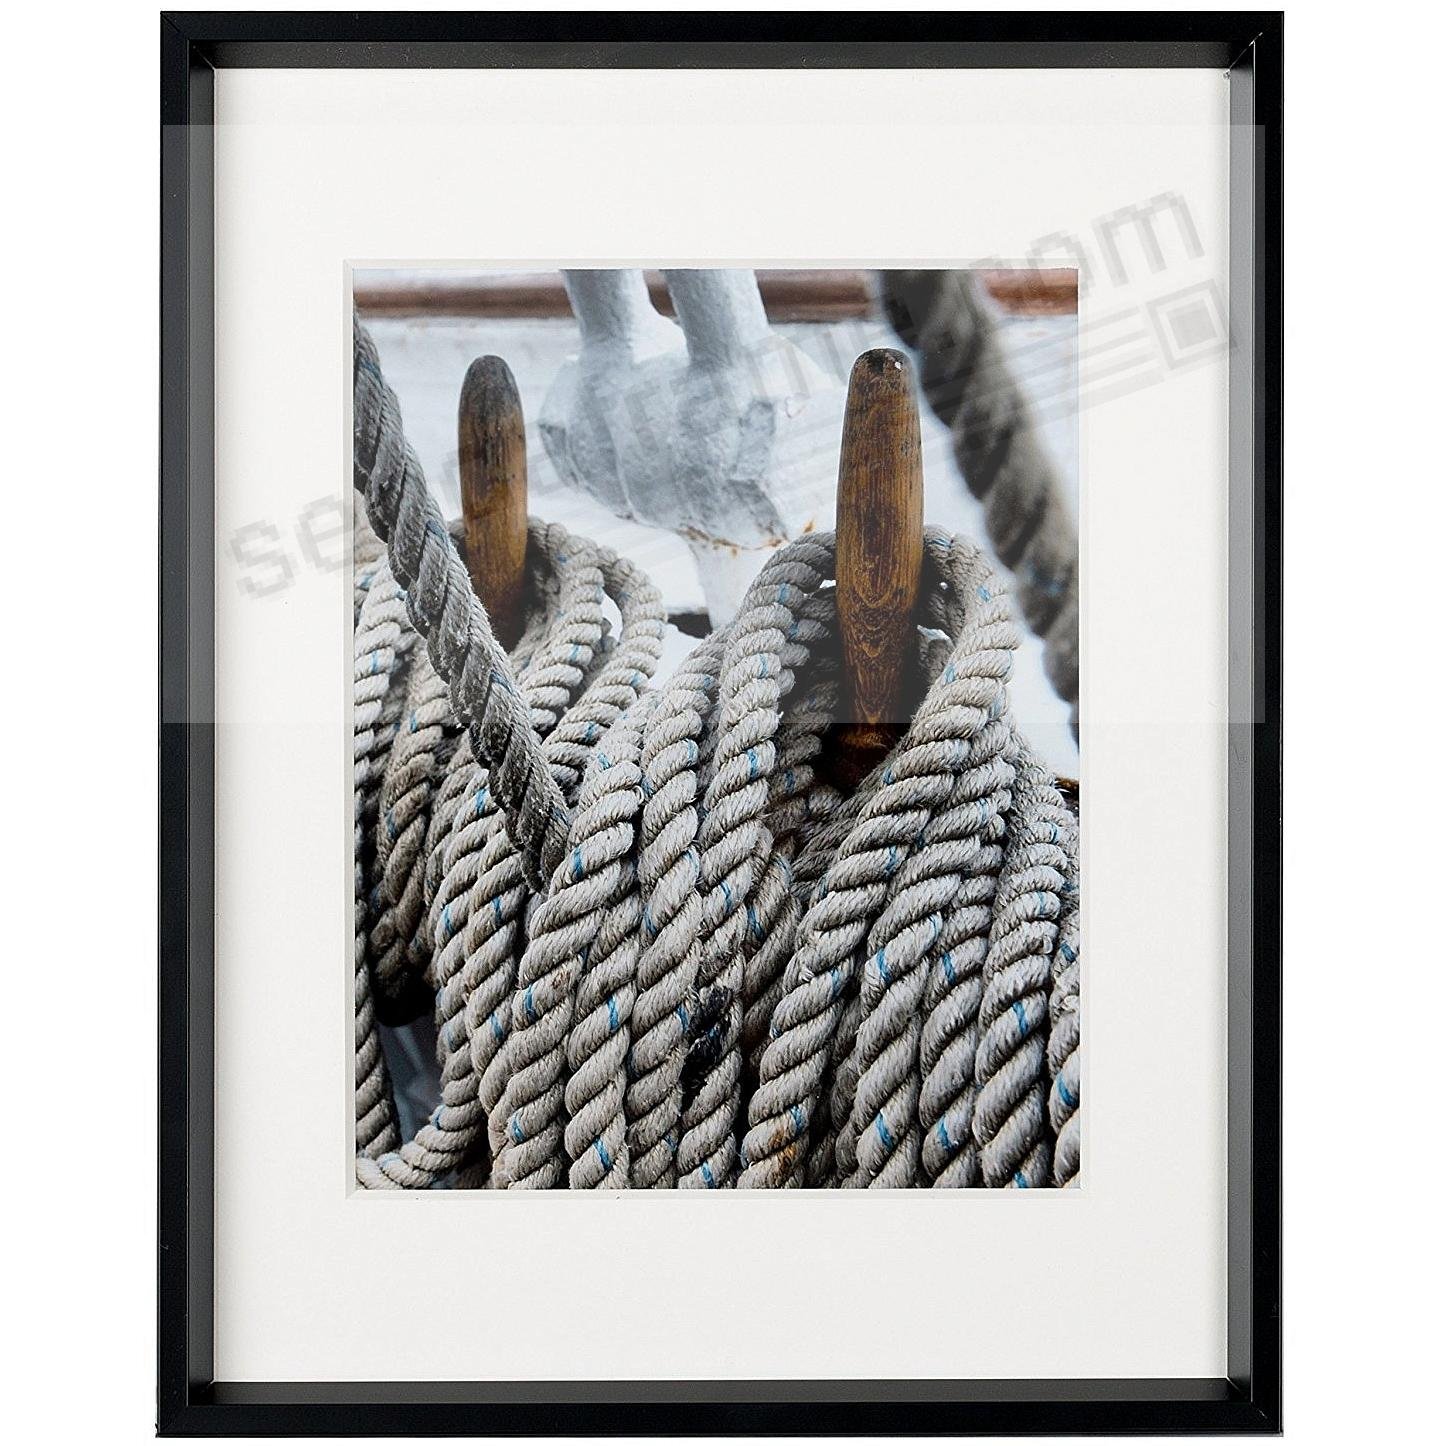 GALLERY matted Matte-Black metallic frame 11x14/8x10 from ARTCARE ...